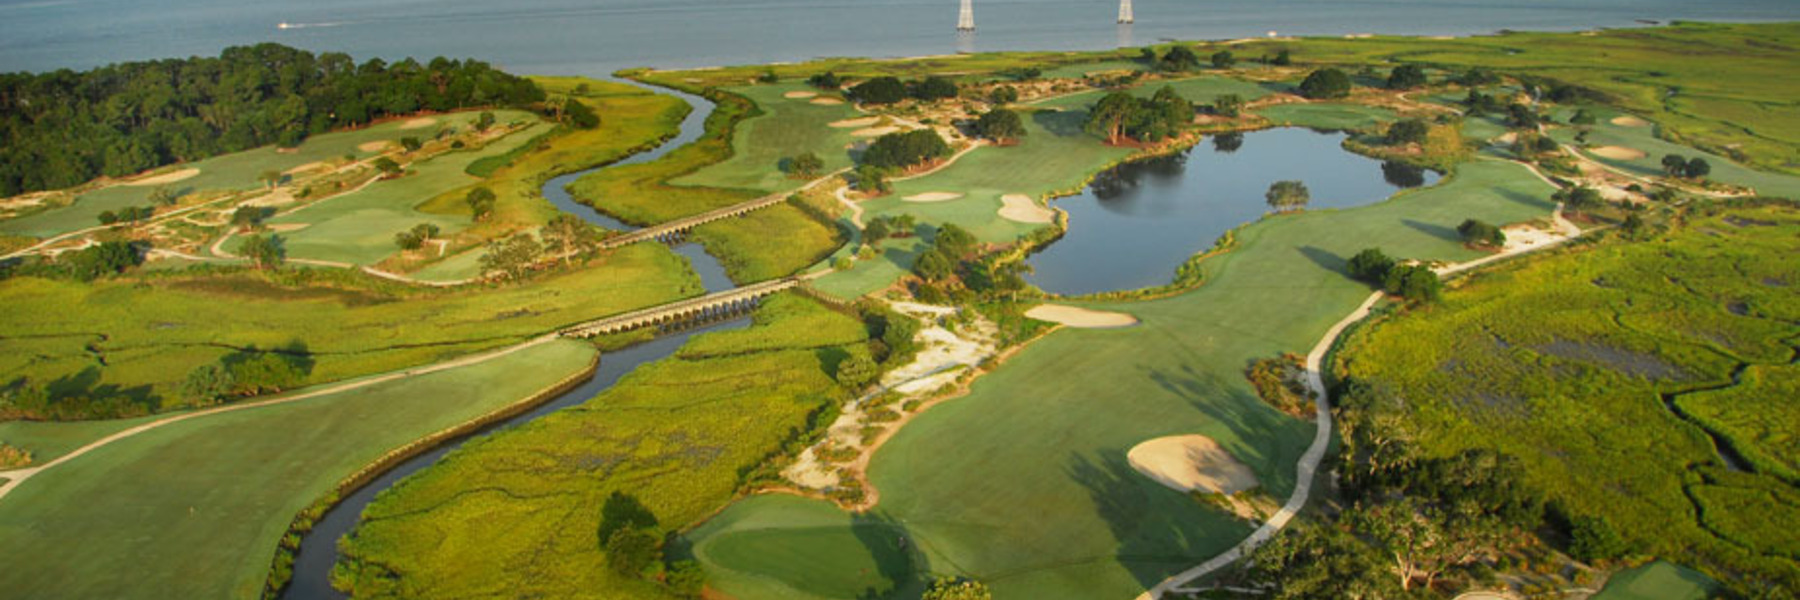 Golf Vacation Package - Seaside Course